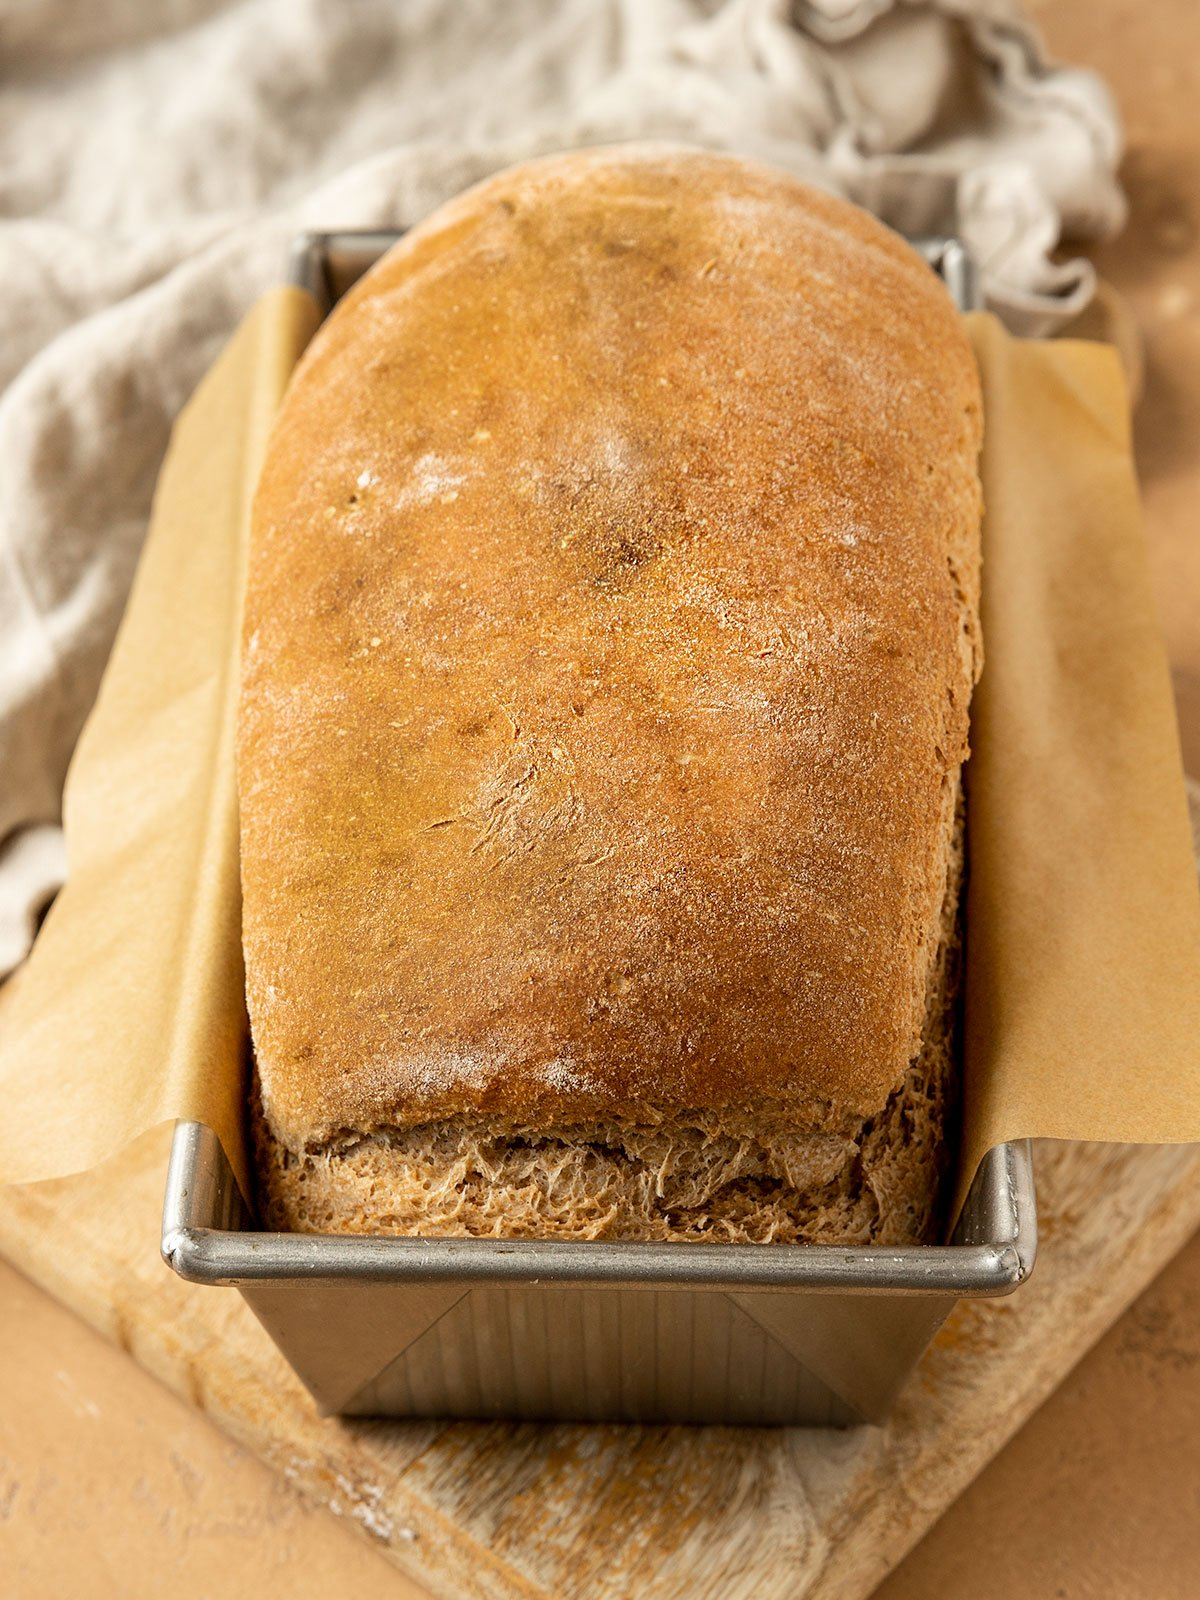 baked loaf of spelt bread in a parchment lined pan